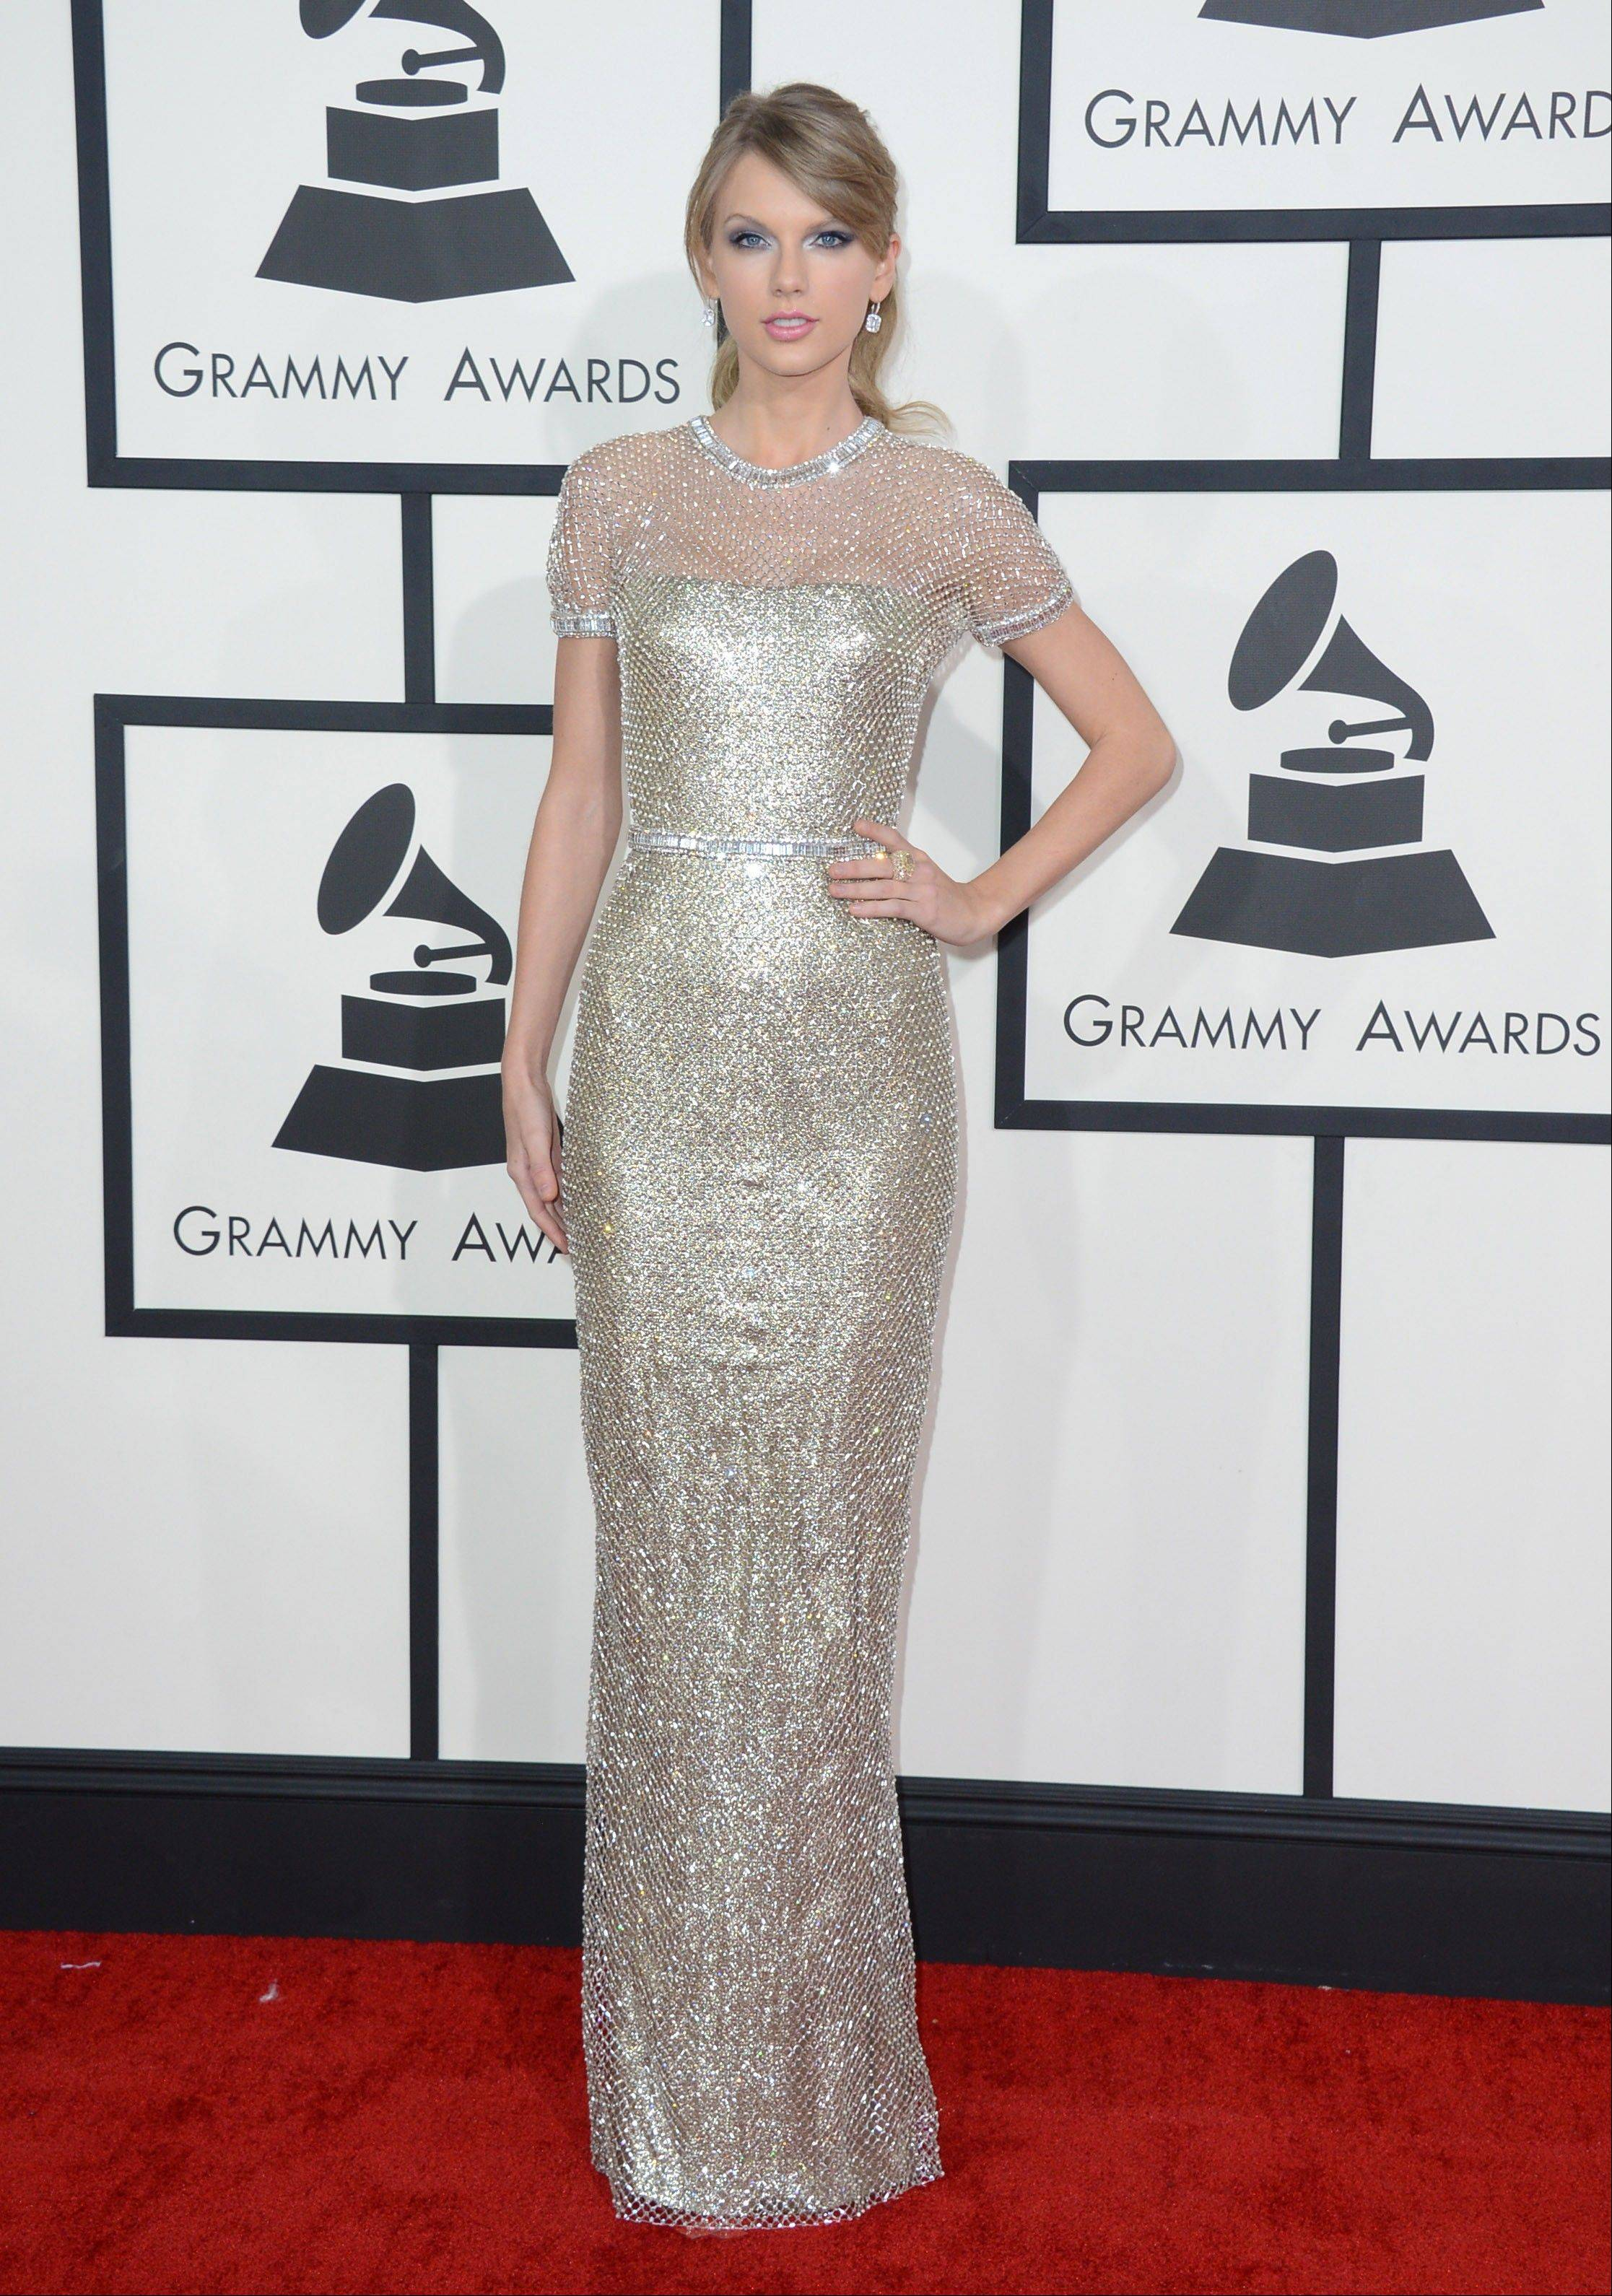 Taylor Swift arrives at the 56th annual Grammy Awards at Staples Center on Sunday.